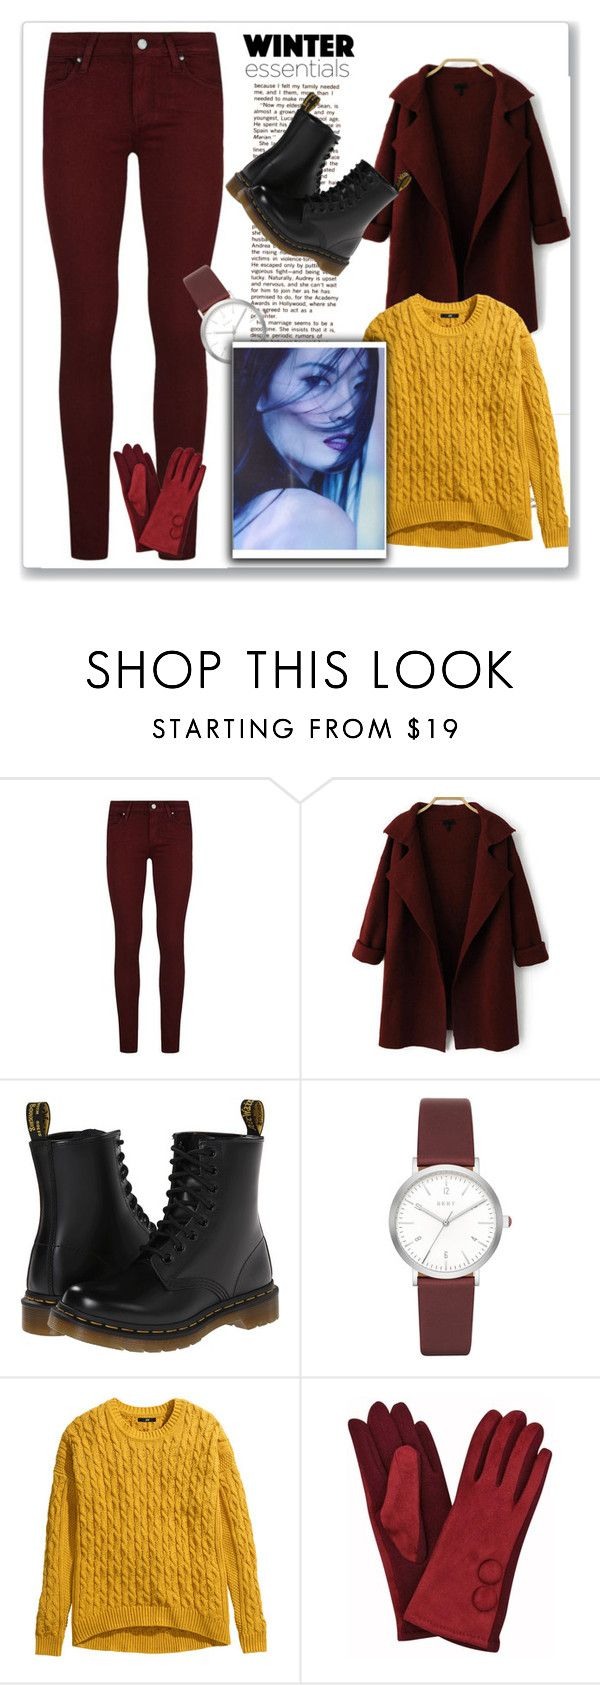 """""""Rhubarb and Custard"""" by niaoffcal ❤ liked on Polyvore featuring Paige Denim, Dr. Martens, DKNY and H&M"""